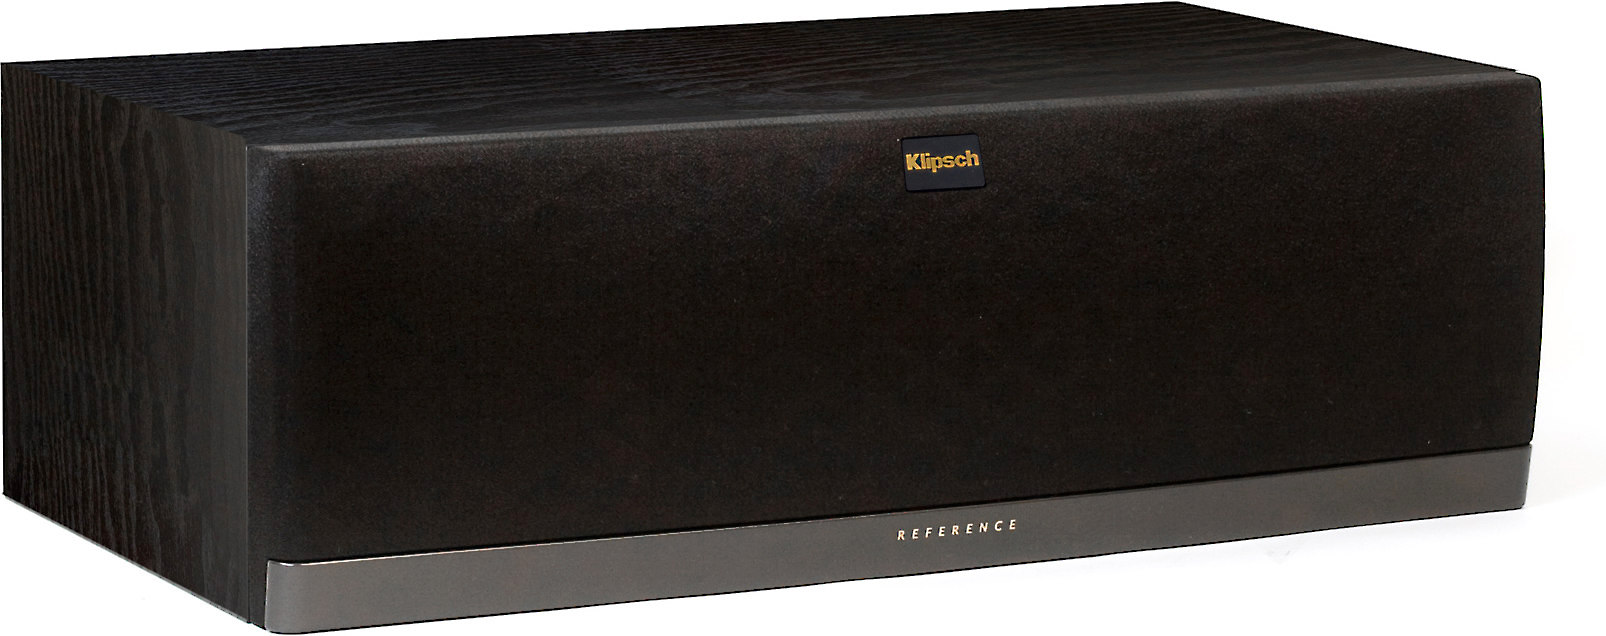 Klipsch Reference RC-52 II